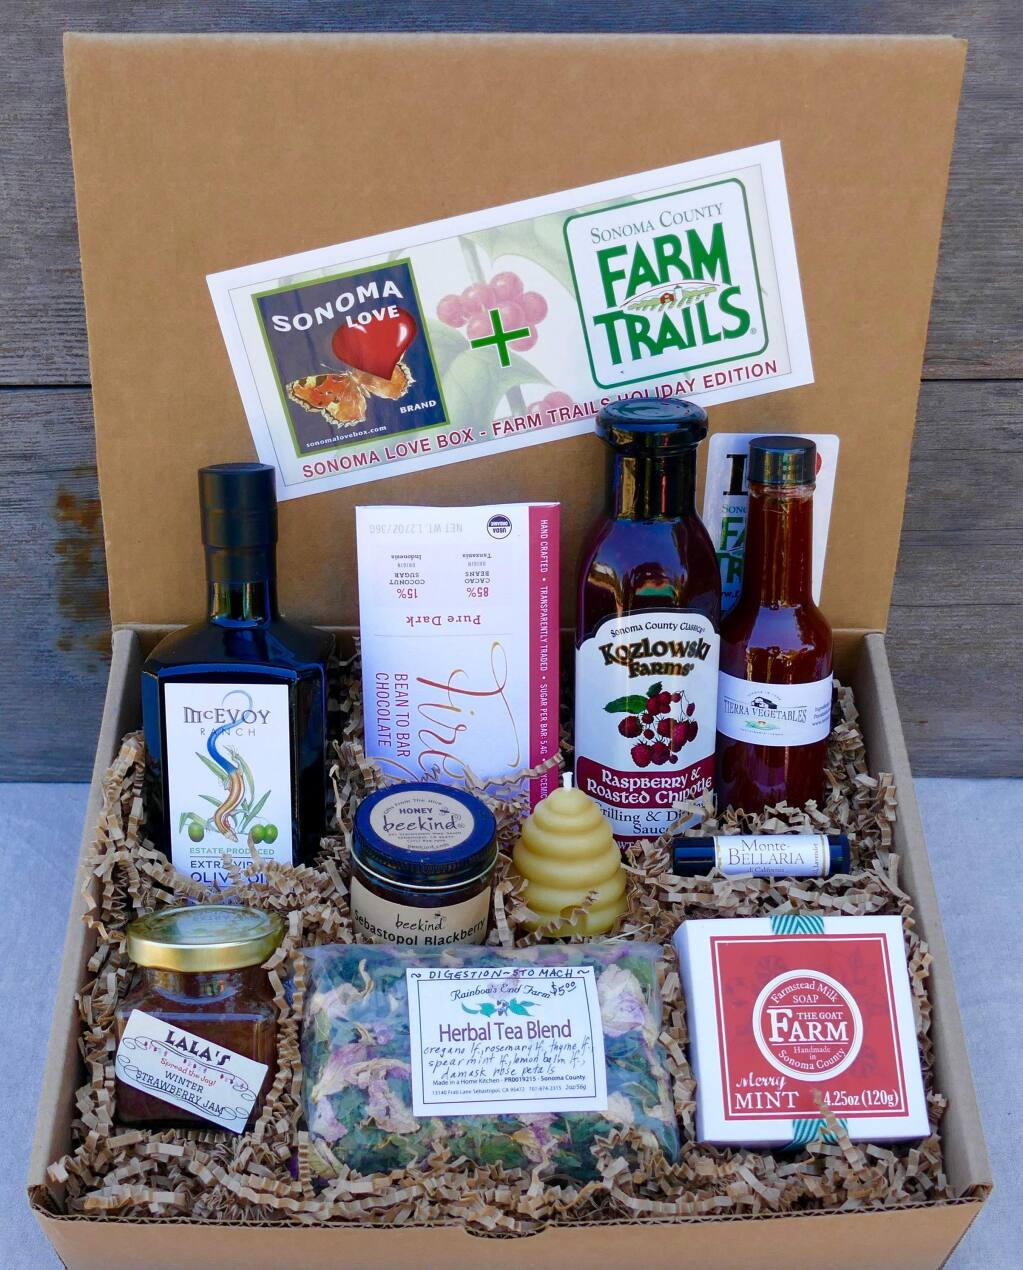 This is the Farm Trails Edition of the Sonoma Love Gift Box, which has produce from local farmers.